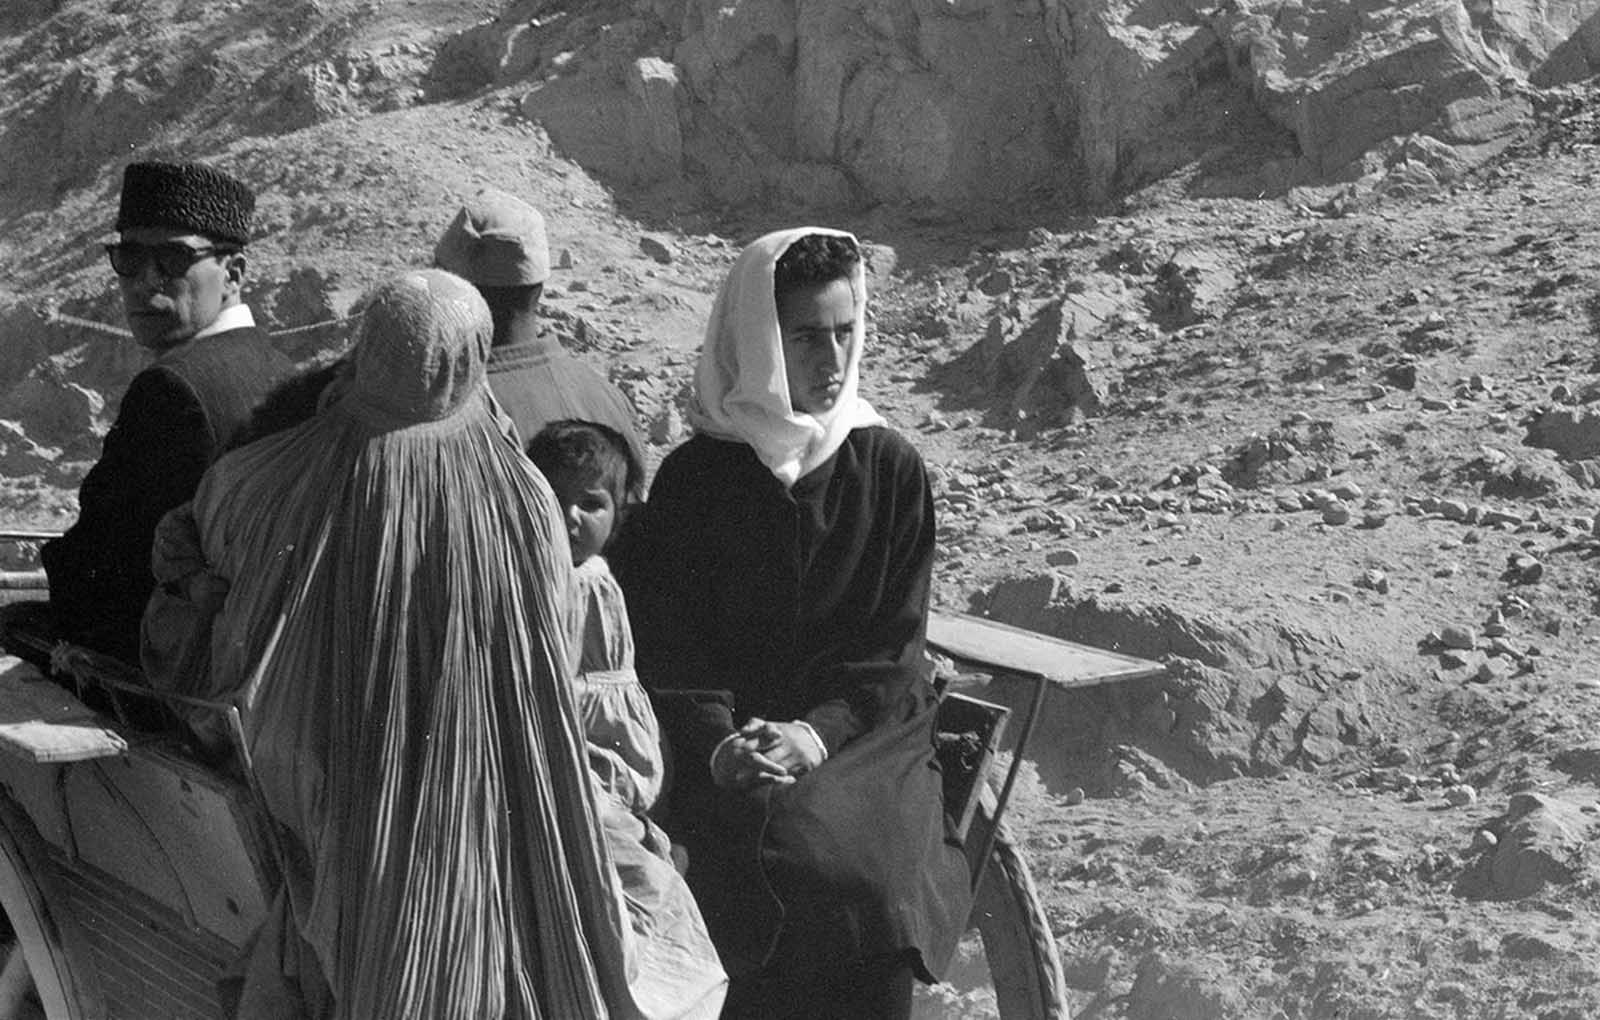 Afghan women, men, and child in traditional dress ride in a cart through an arid, rocky landscape, November, 1959.